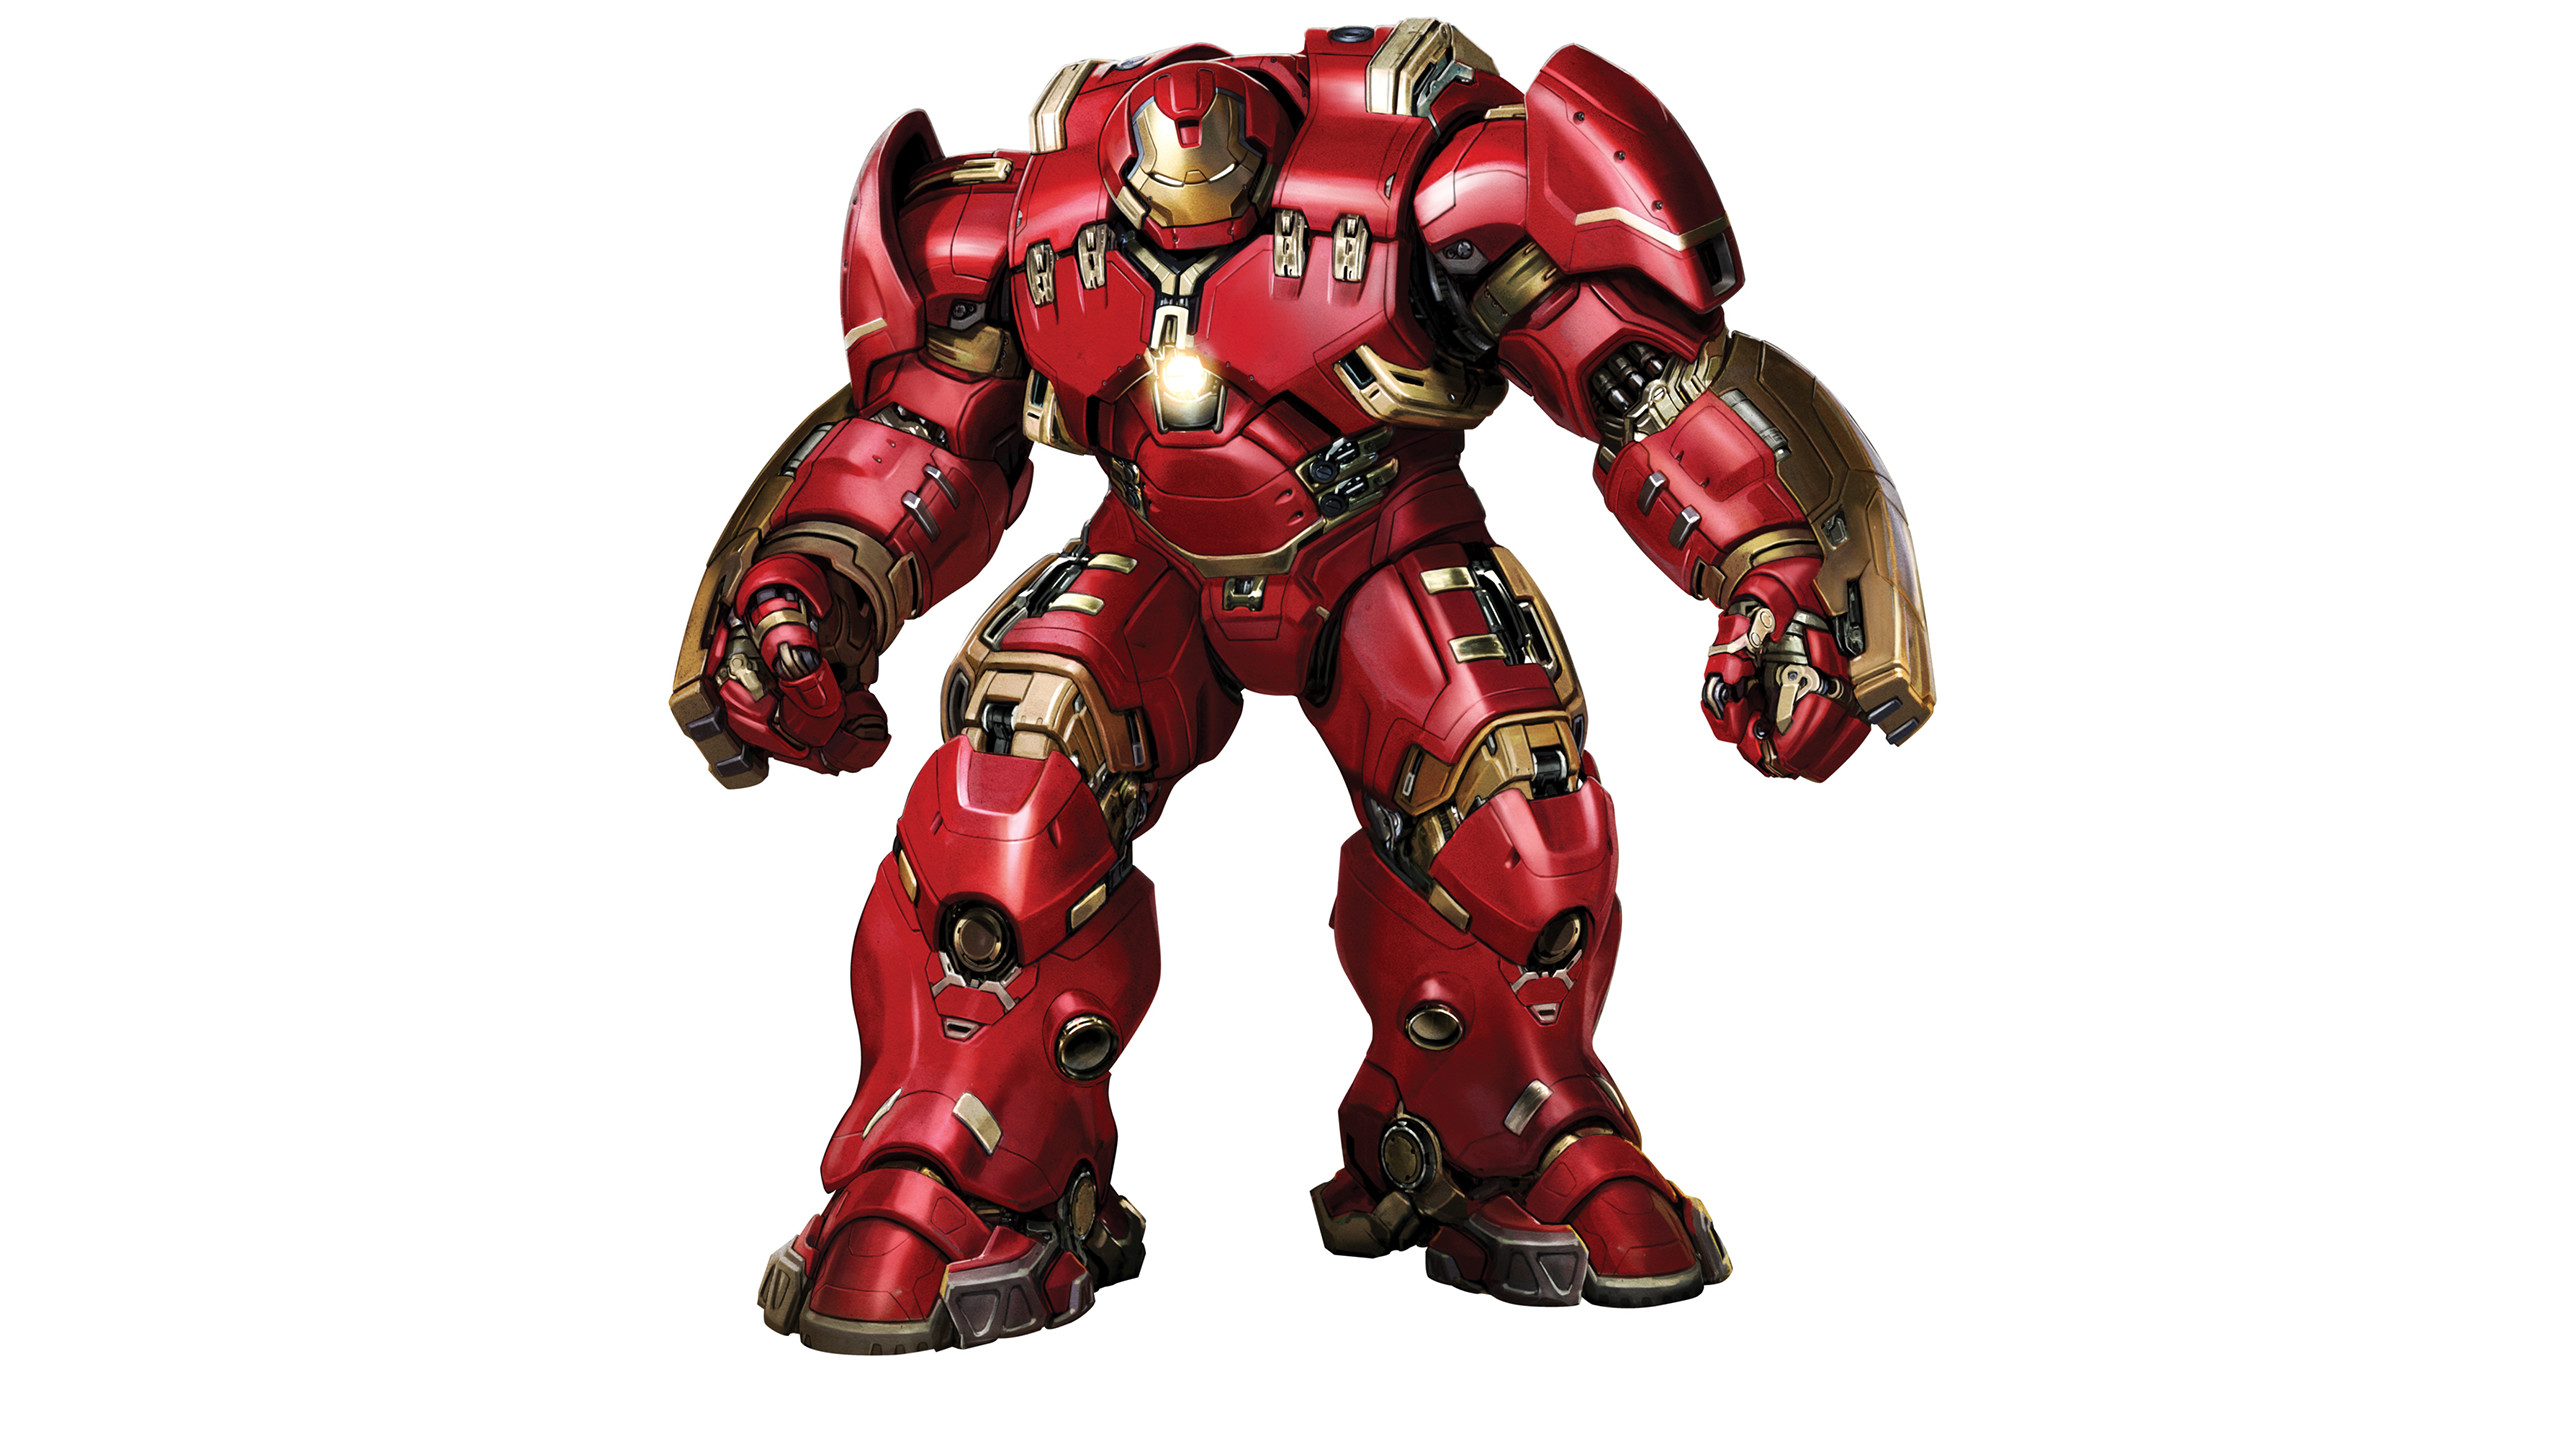 Res: 2560x1440, hulkbuster-suit-artwork-lu.jpg